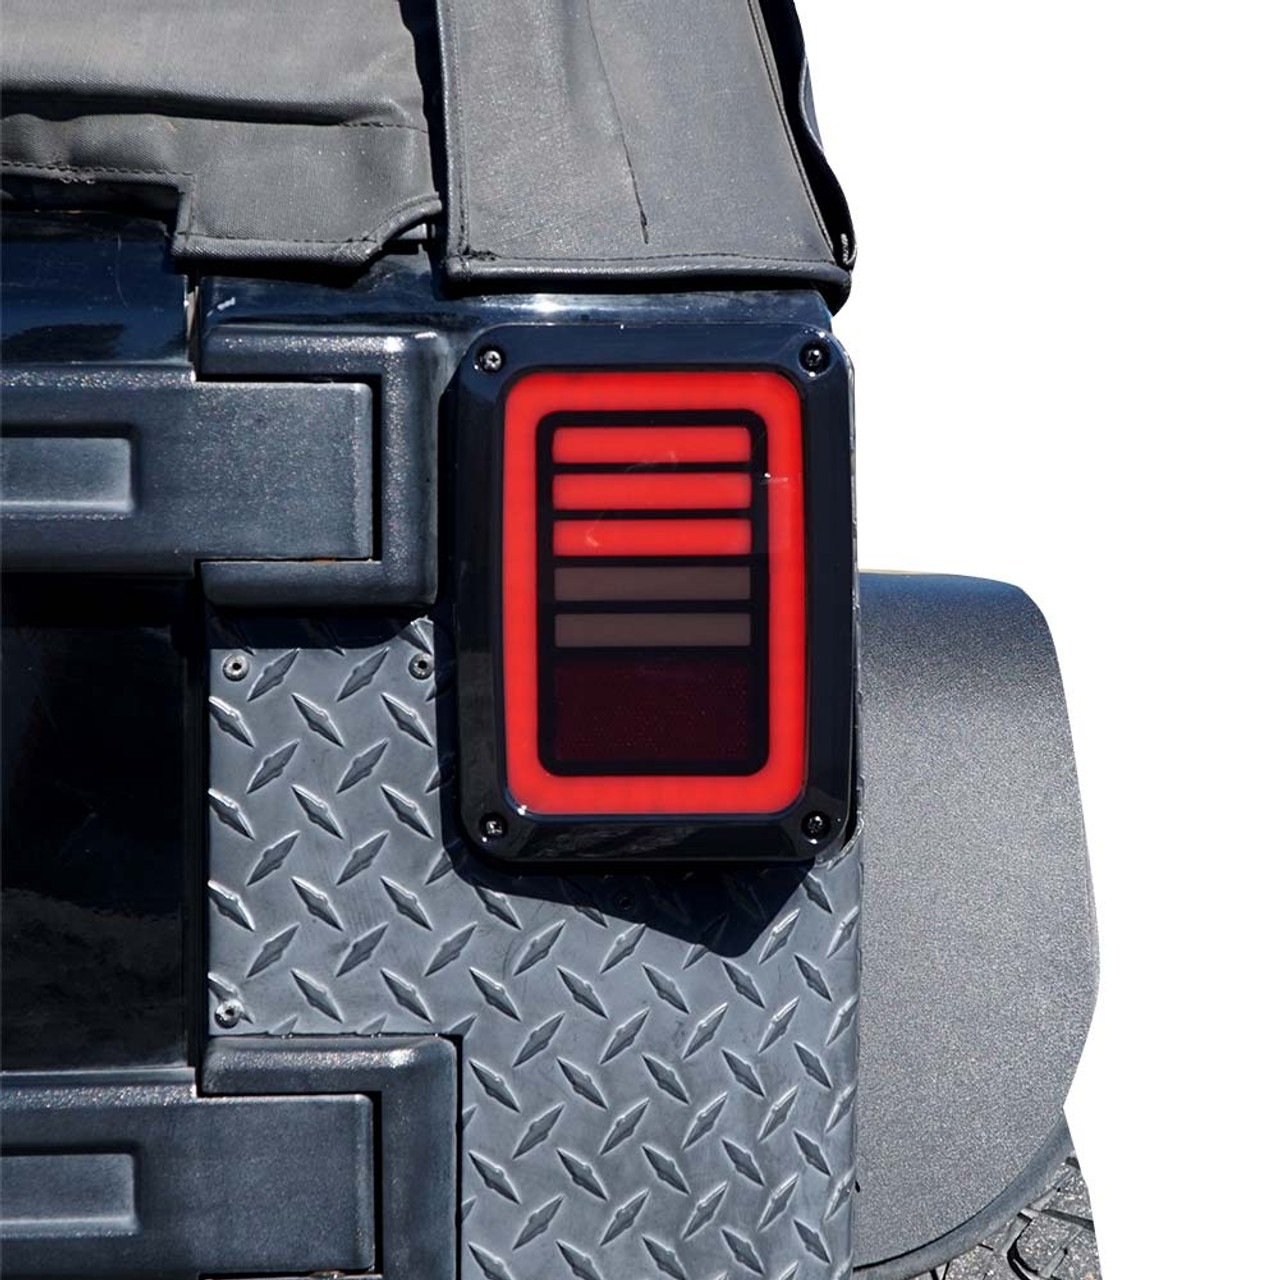 Delightful 3D Smoked Halo LED Tail Lights For Wrangler JK 2007 2017